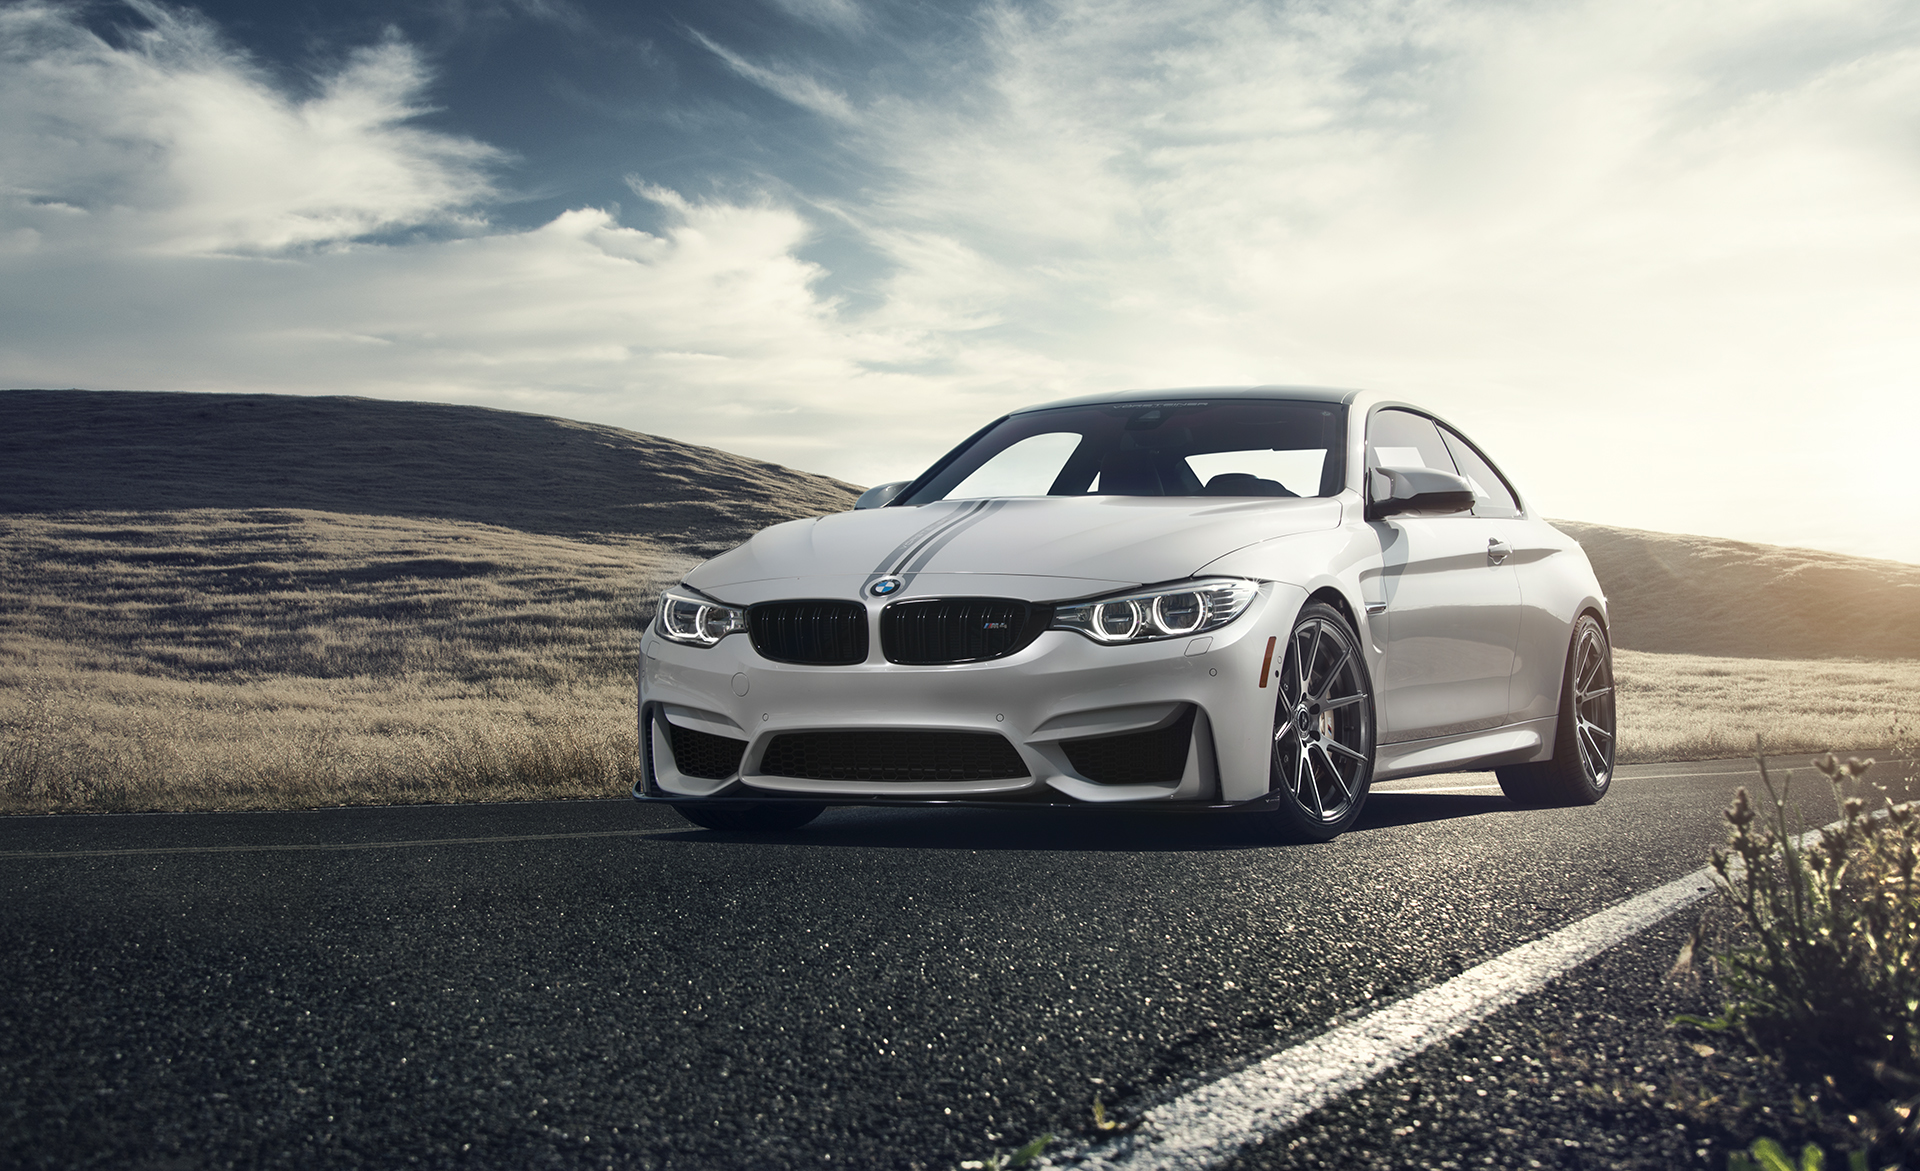 1920x1171 - BMW M4 Wallpapers 21